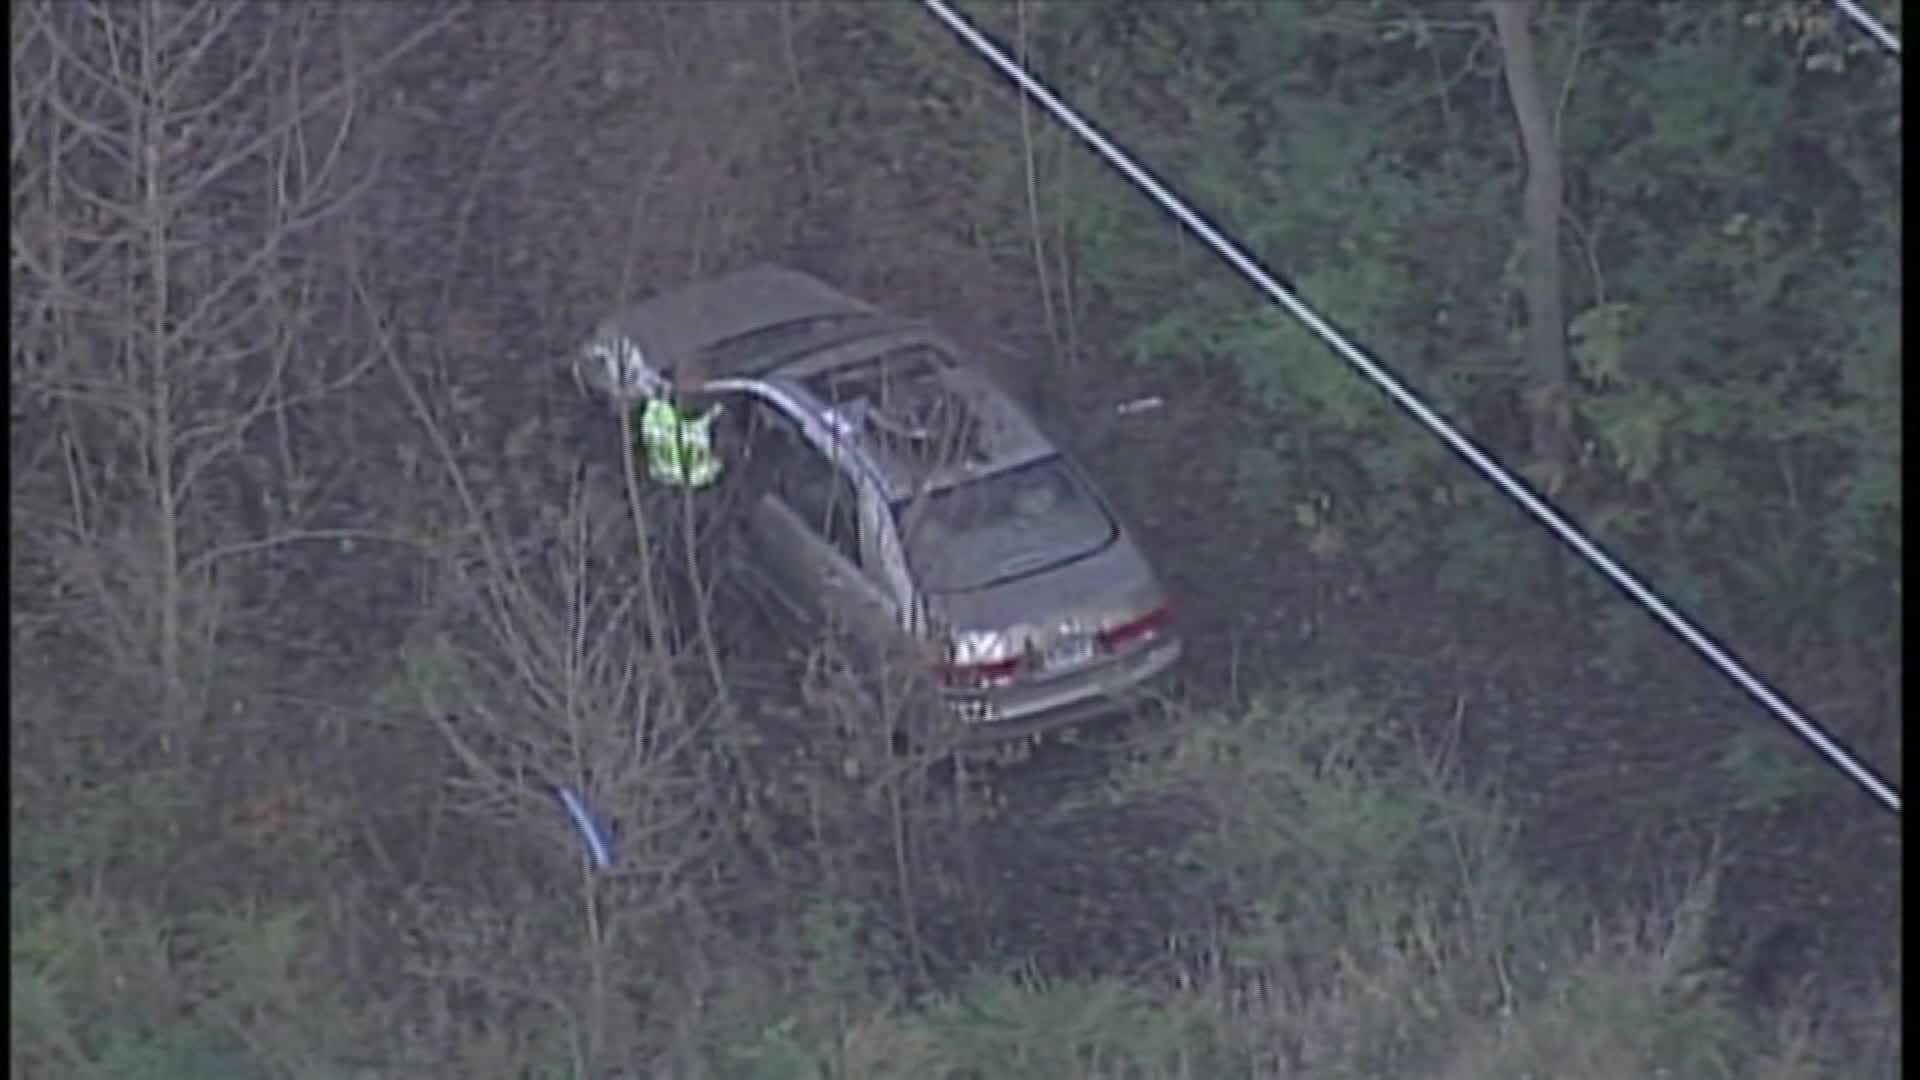 A man who survived a week in his car at the bottom of a ravine has died, police say